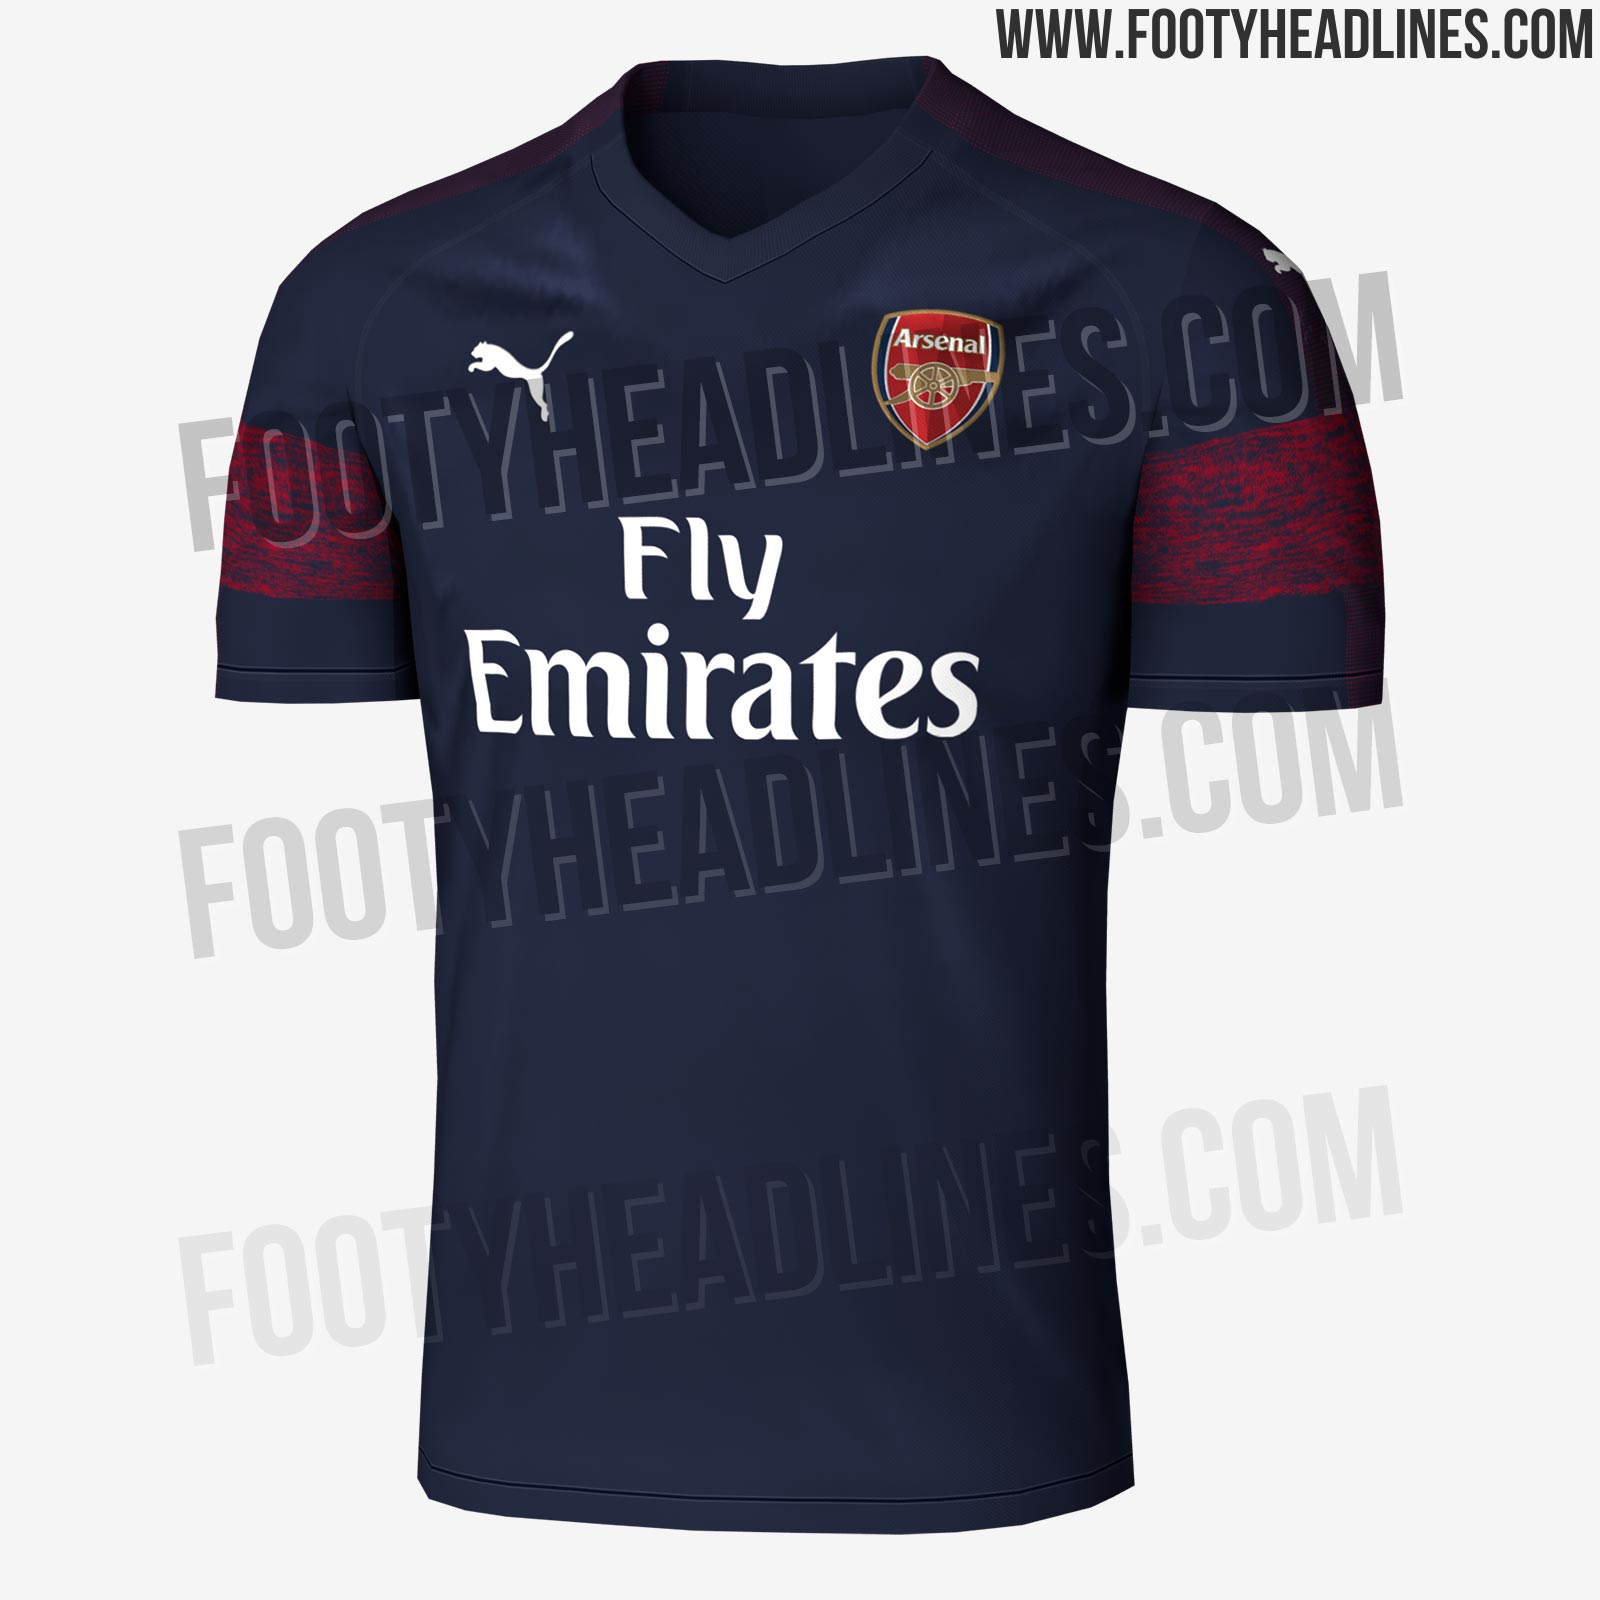 arsenal-18-19-away-kit-2.jpg